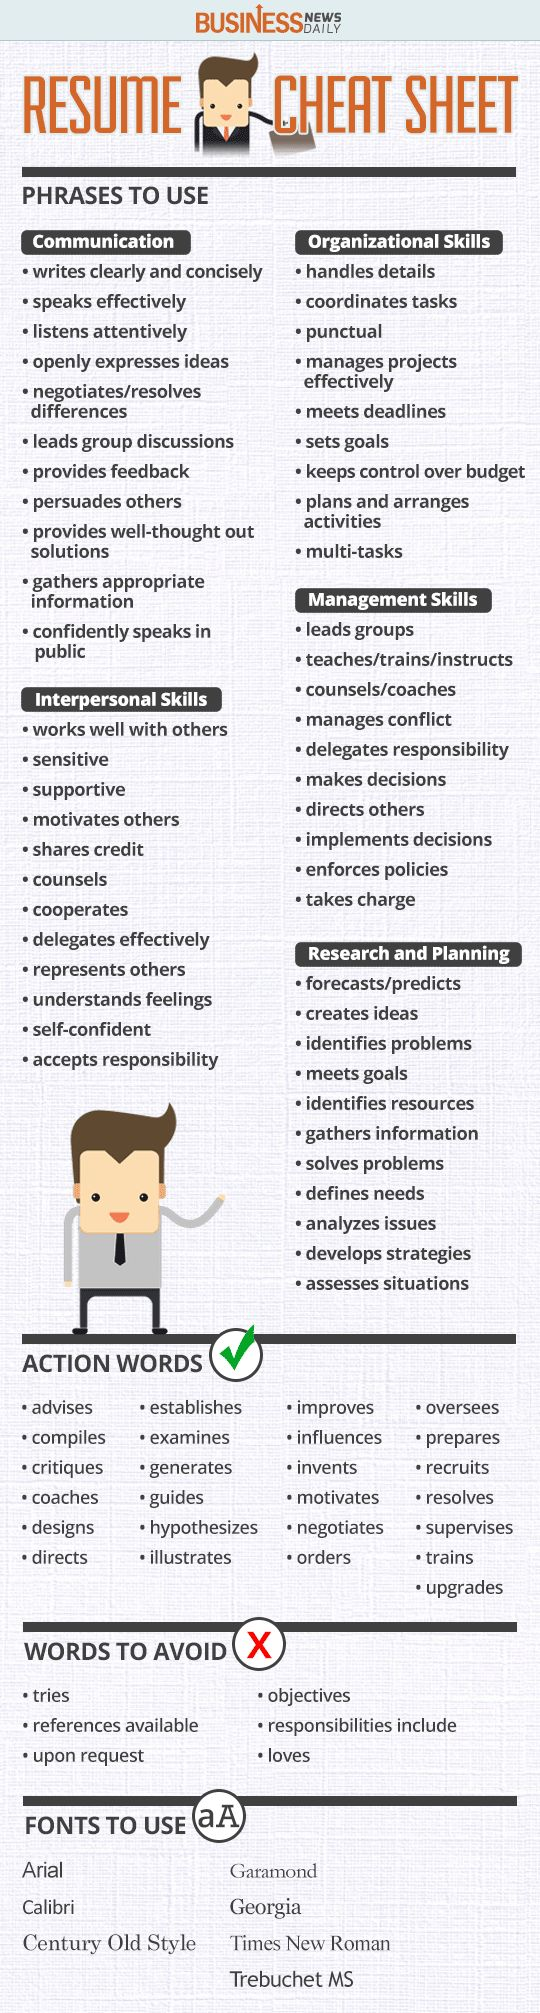 Opposenewapstandardsus  Prepossessing  Ideas About Resume On Pinterest  Cv Format Resume Cv And  With Handsome Resume Cheat Sheet Infographic Andrews Almost Done With A Complete Unit On Employment Which With Archaic Resume With Picture Also Resume Latex In Addition Resume Bulider And Social Media Manager Resume As Well As Server Resume Examples Additionally Retail Resume Template From Pinterestcom With Opposenewapstandardsus  Handsome  Ideas About Resume On Pinterest  Cv Format Resume Cv And  With Archaic Resume Cheat Sheet Infographic Andrews Almost Done With A Complete Unit On Employment Which And Prepossessing Resume With Picture Also Resume Latex In Addition Resume Bulider From Pinterestcom